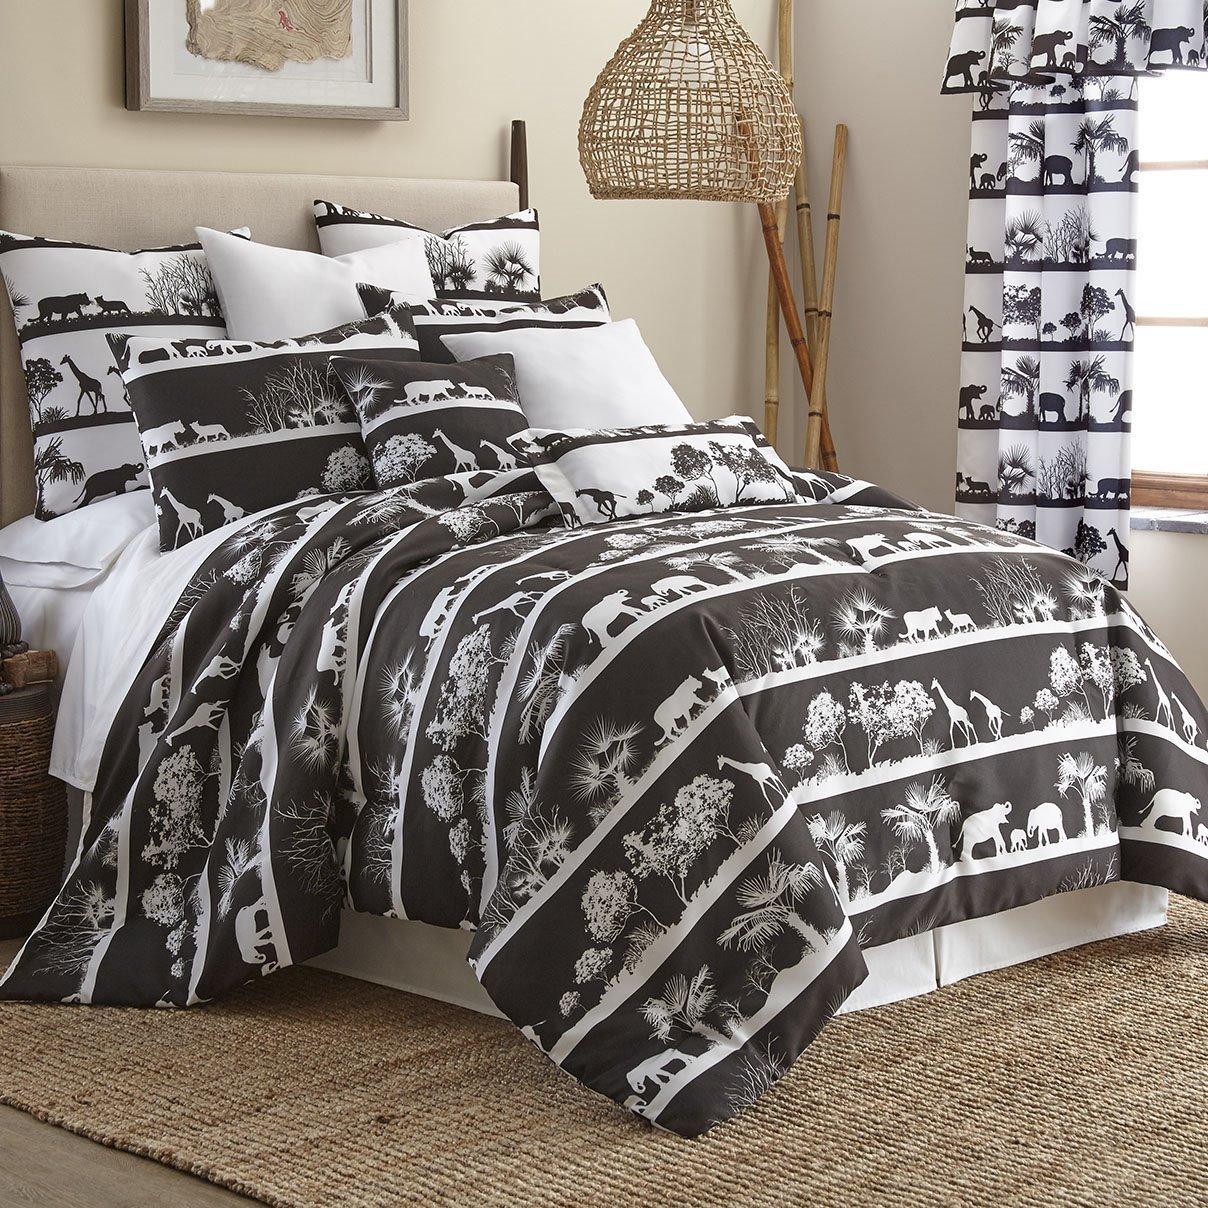 African Safari Comforter Set Queen Size By Colcha Linens